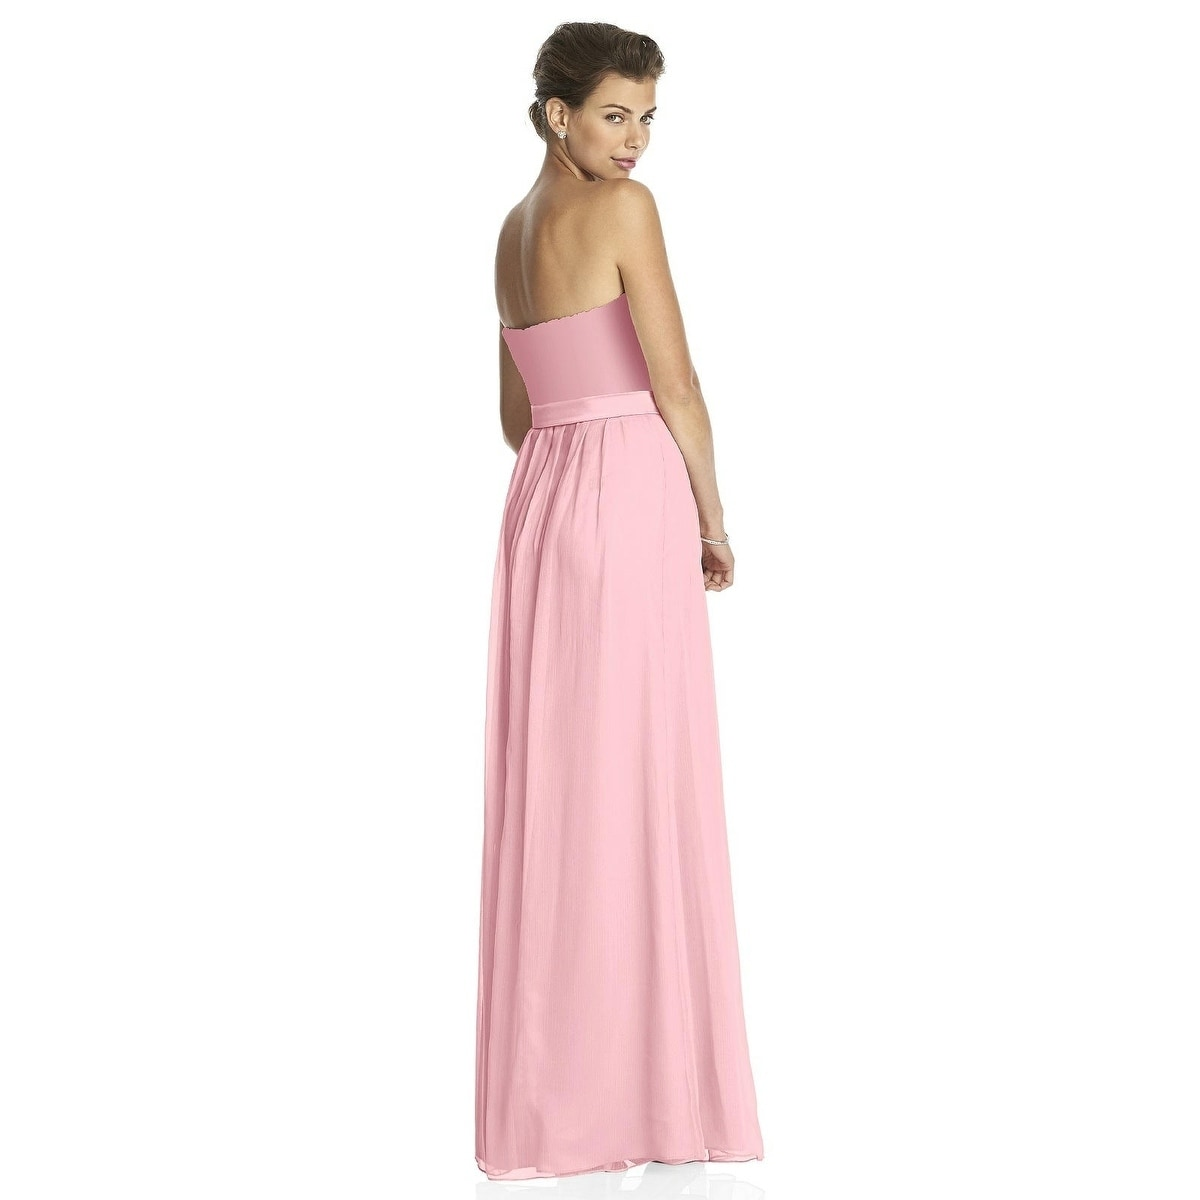 Lela Rose Lace and Satin Strapless Full Length Dress - Free Shipping ...